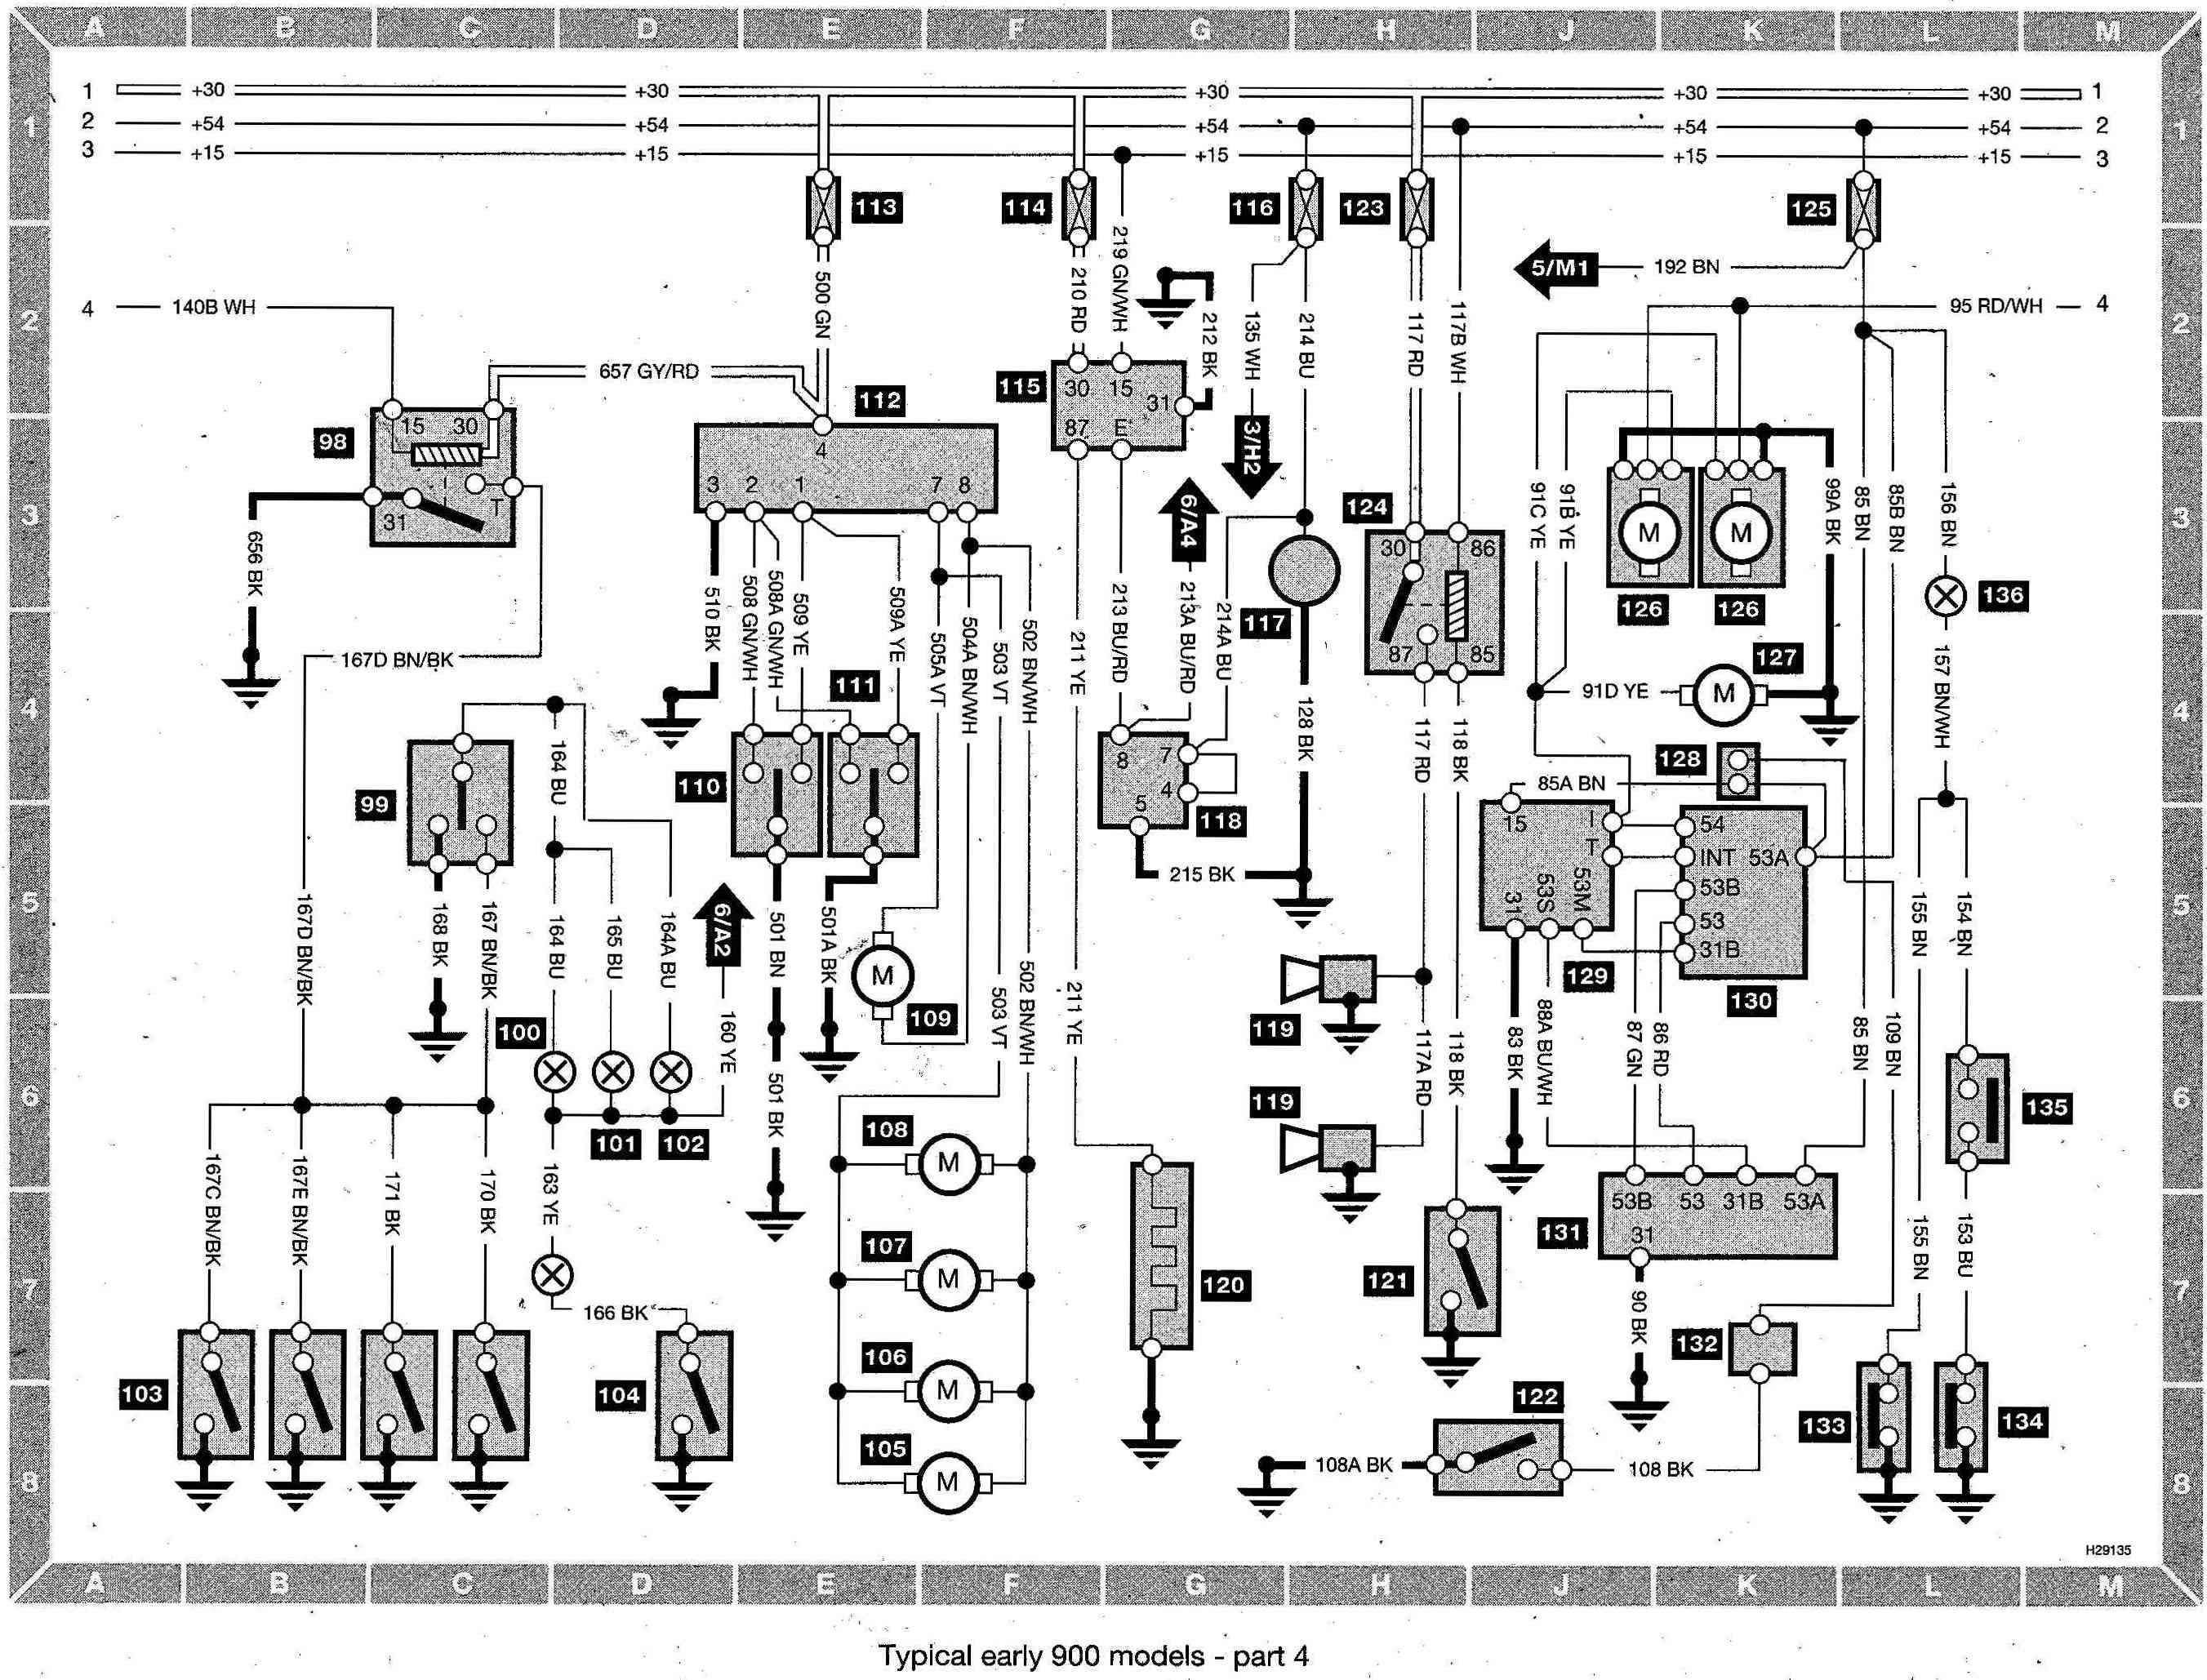 Index of /saab/Saab 900 Wiring diagram (early models)